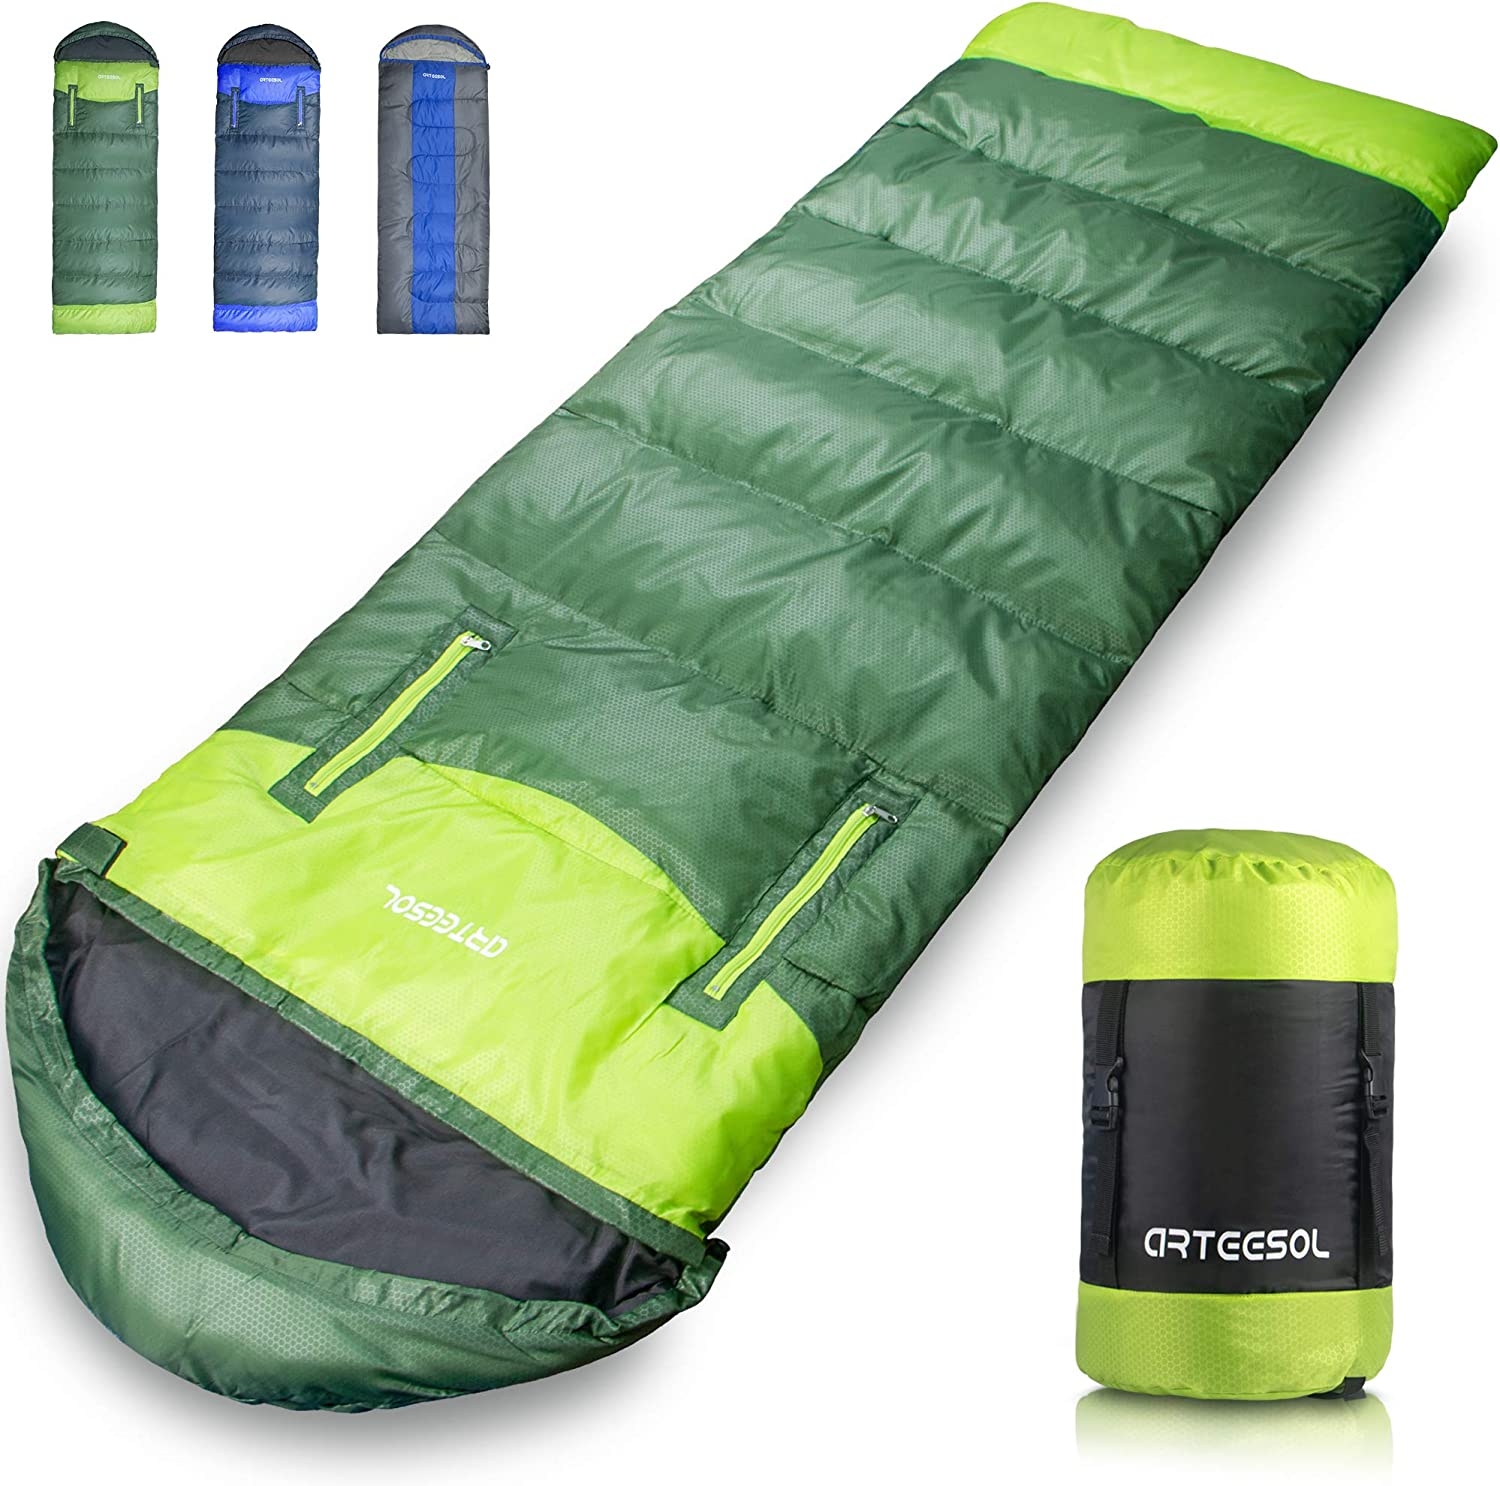 arteesol Sleeping Bag, Waterproof Lightweight for Indoor & Outdoor, 5-85℉ 4 Seasons Warm and Comforable, Camping Gear Equipment for Hiking Traveling ...